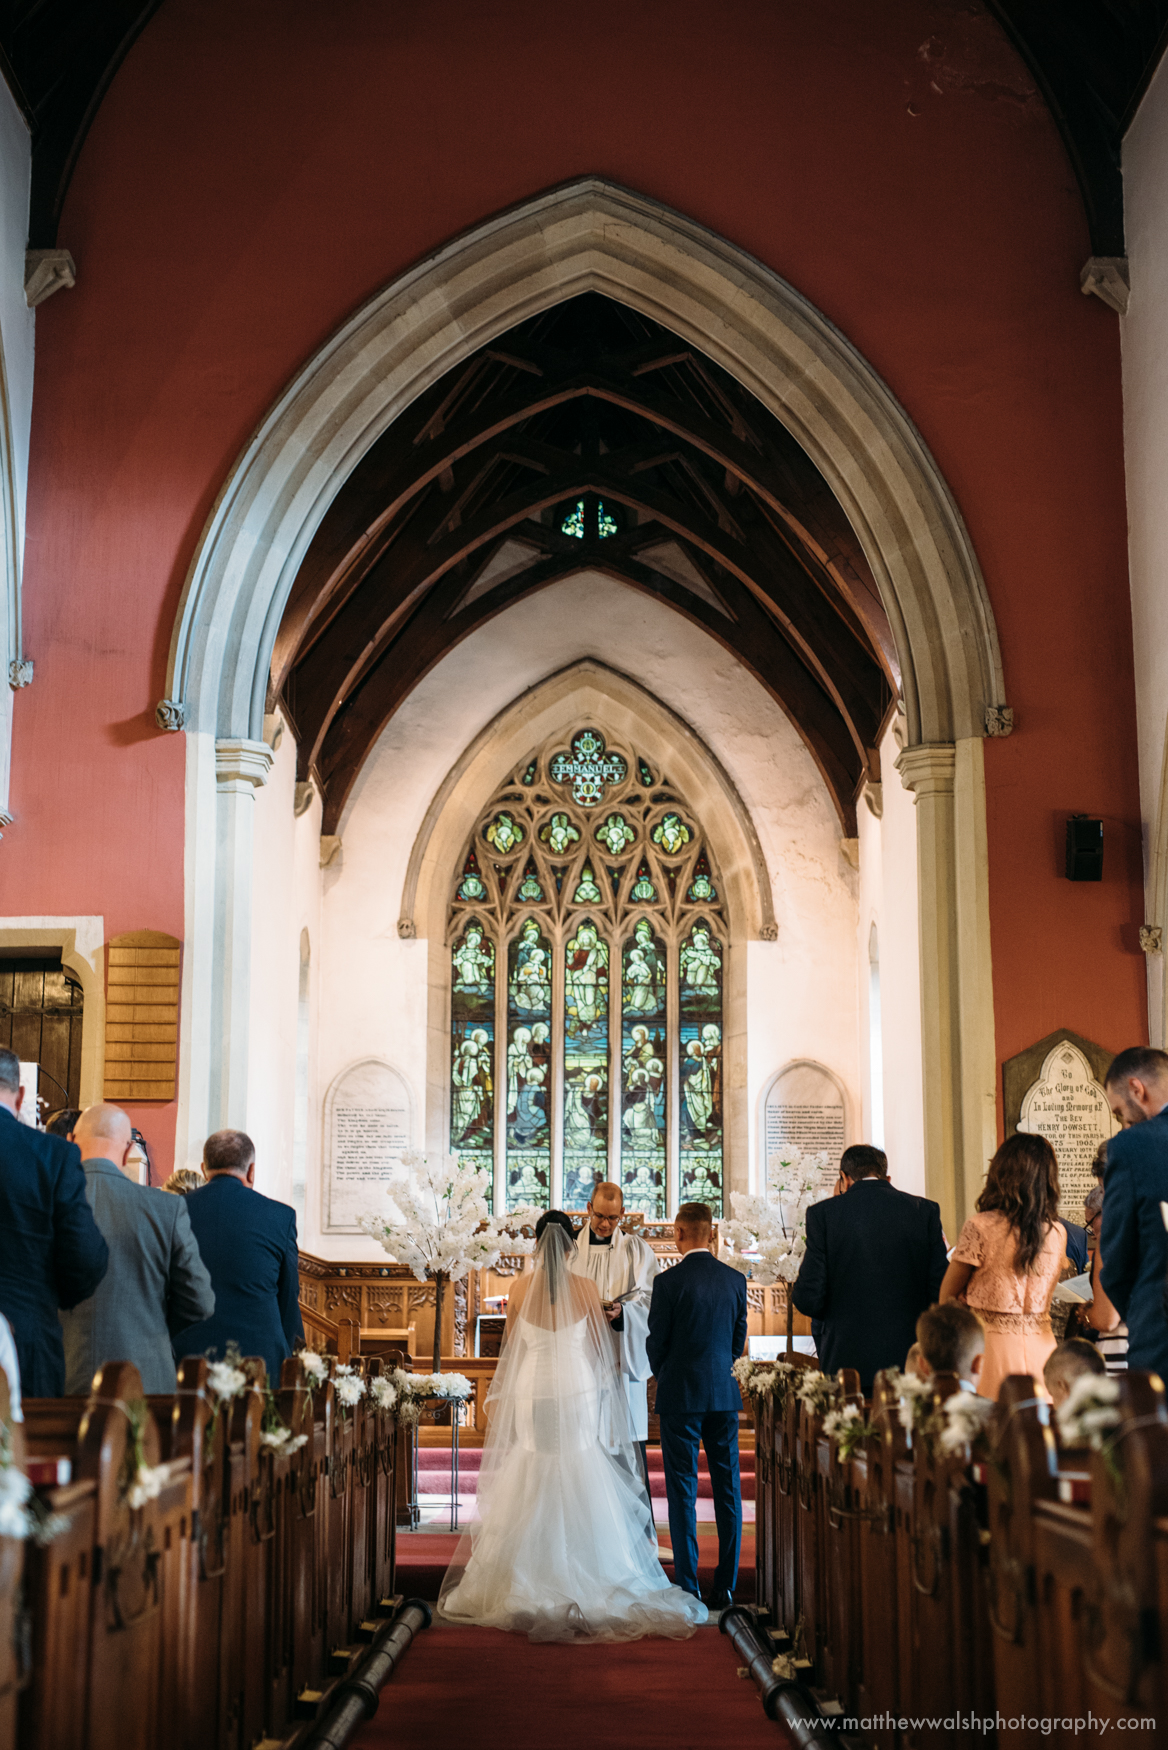 A wide angle view of the Church as the Bride and groom marry